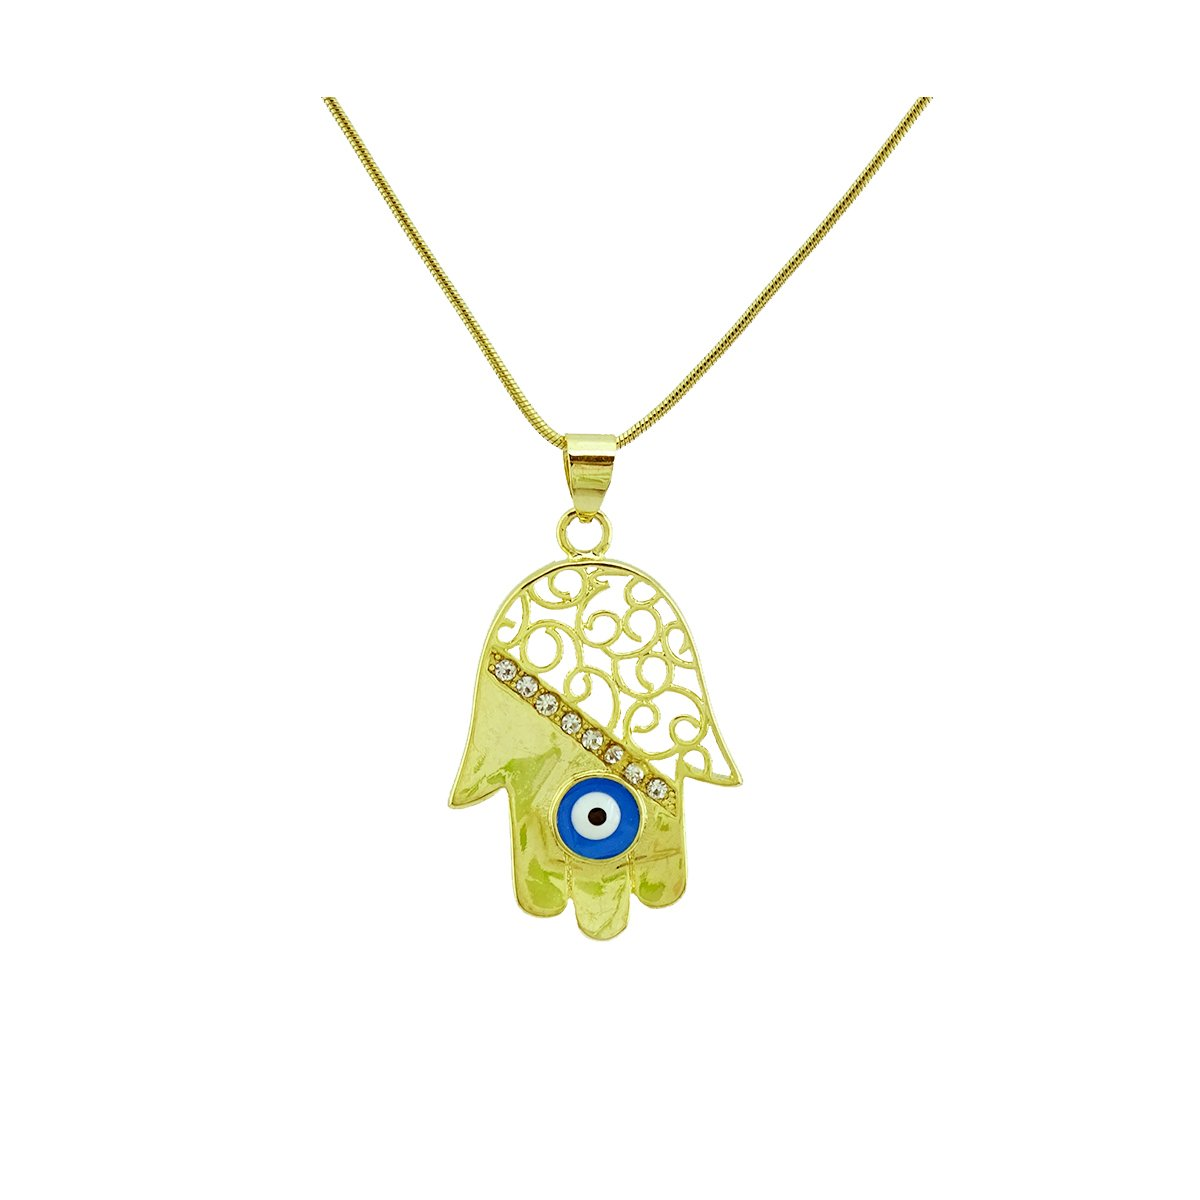 Passage 7 18K Real Gold Plated Hamsa Hand Of Fatima Evil Eye Crystal Zircon Pendant Necklace